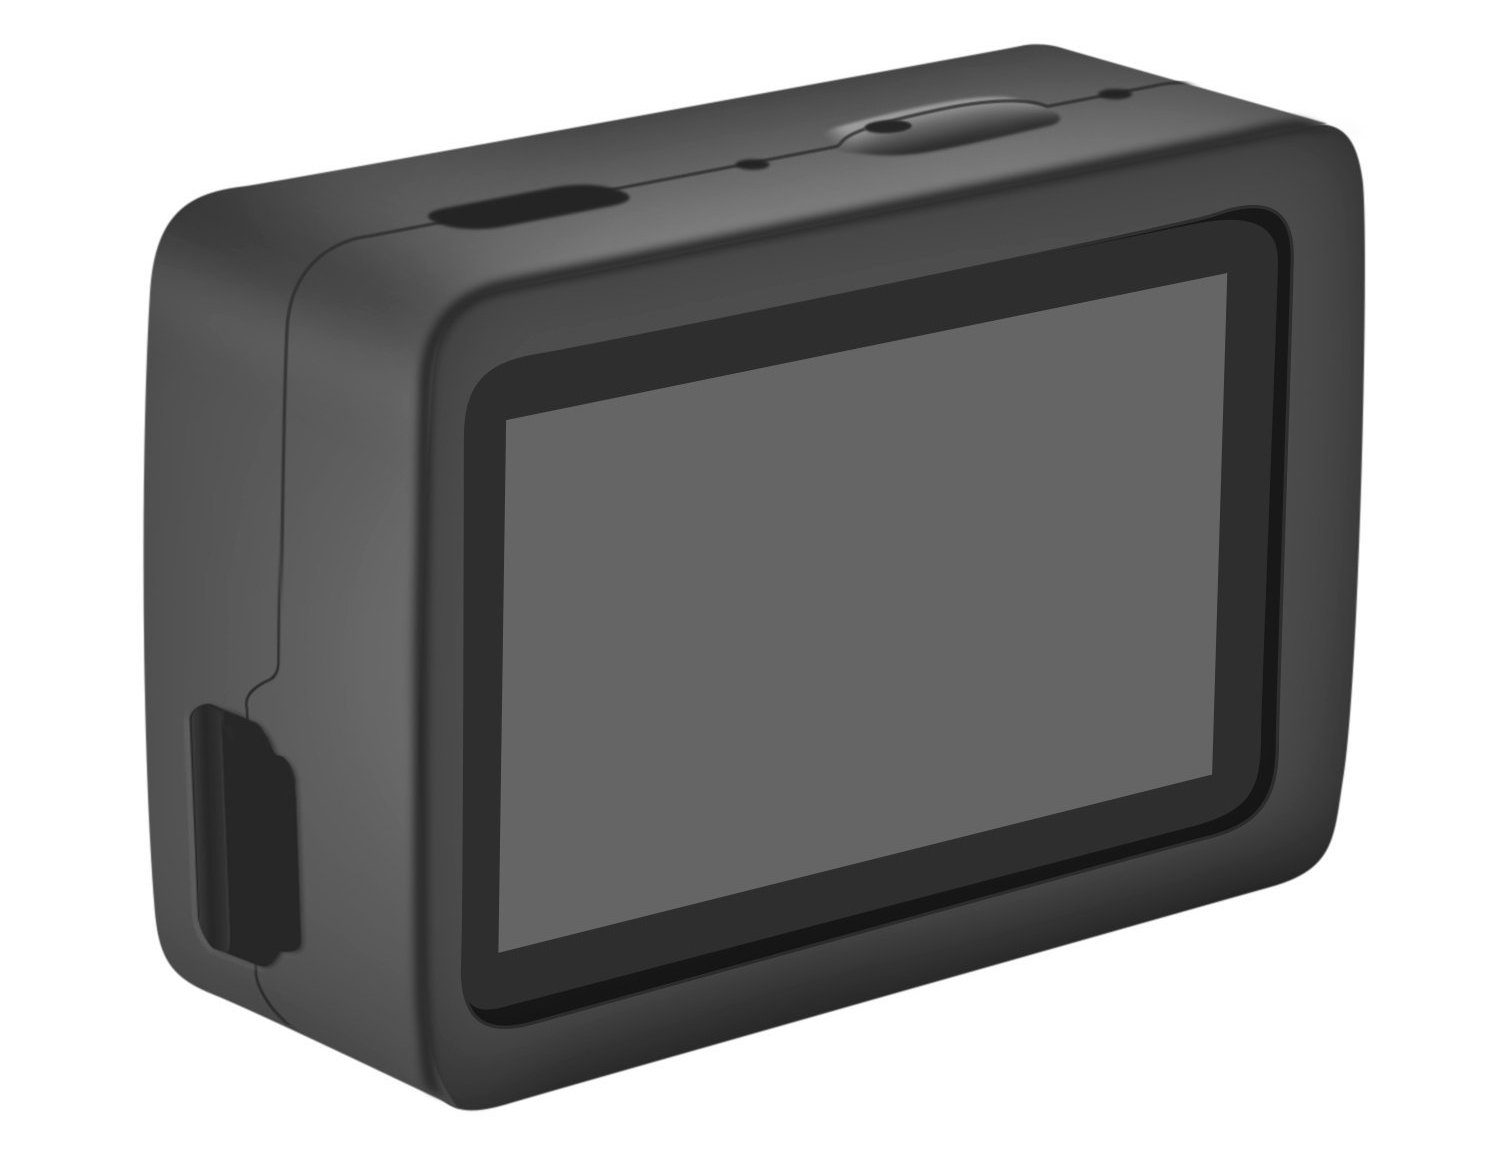 Silicone-protective-case-for-Yi-4K-Black-BMGP-261-0